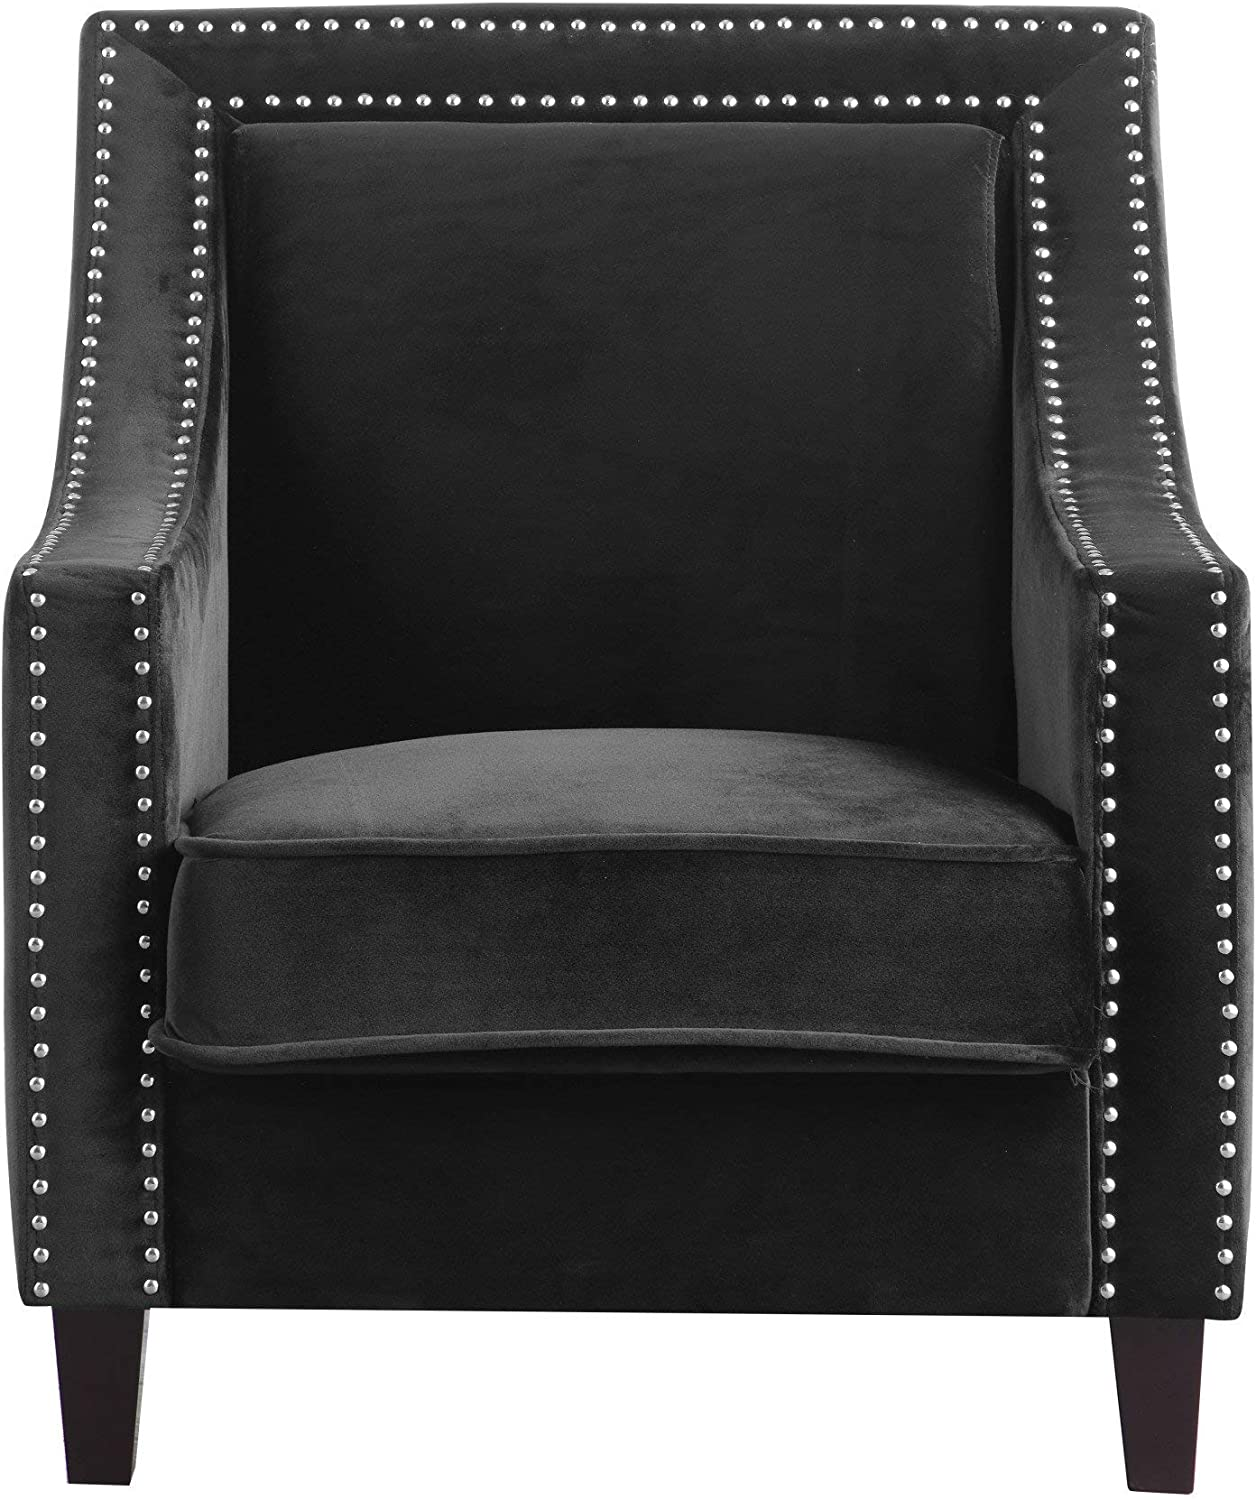 Iconic Home Camren Accent Club Chair Velvet Upholstered Swoop Arm Silver Nailhead Trim Espresso Finished Wood Legs Modern Contemporary, Black,FAC2993-AN